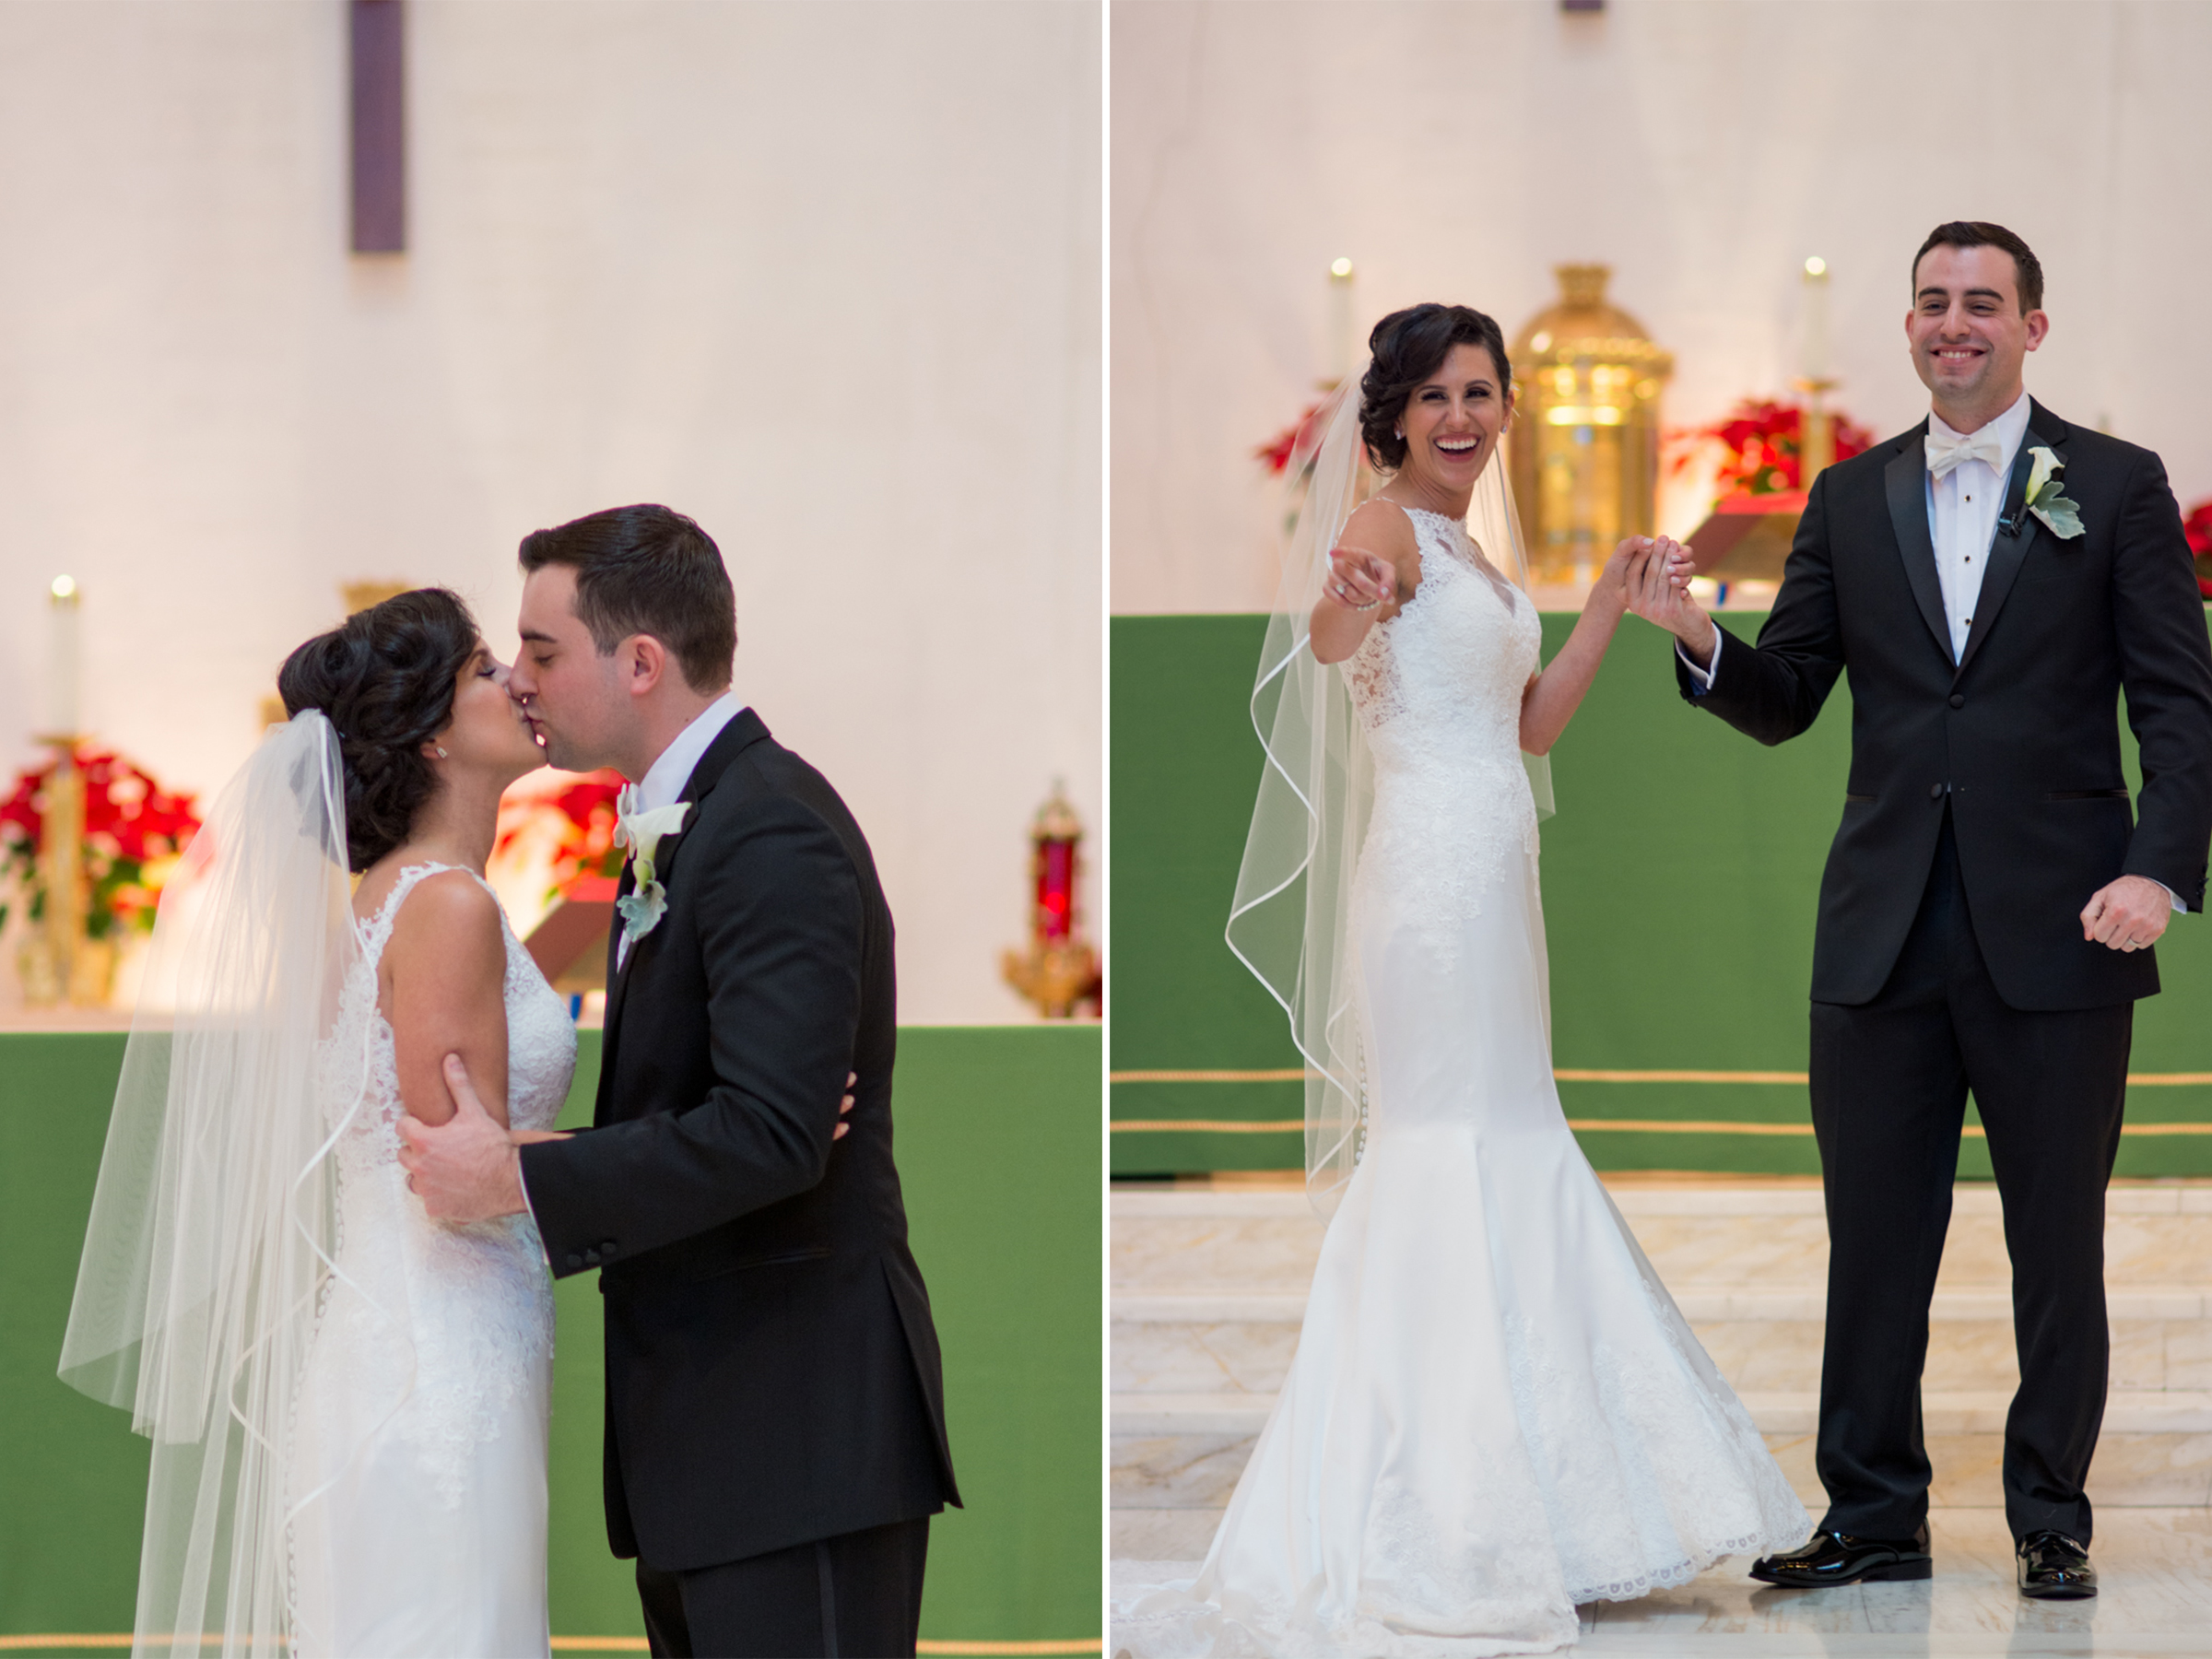 Michelle+Joe- You May Kiss The Bride - Ryland Inn Winter Wedding - New Jersey - Olivia Christina Photo.jpg